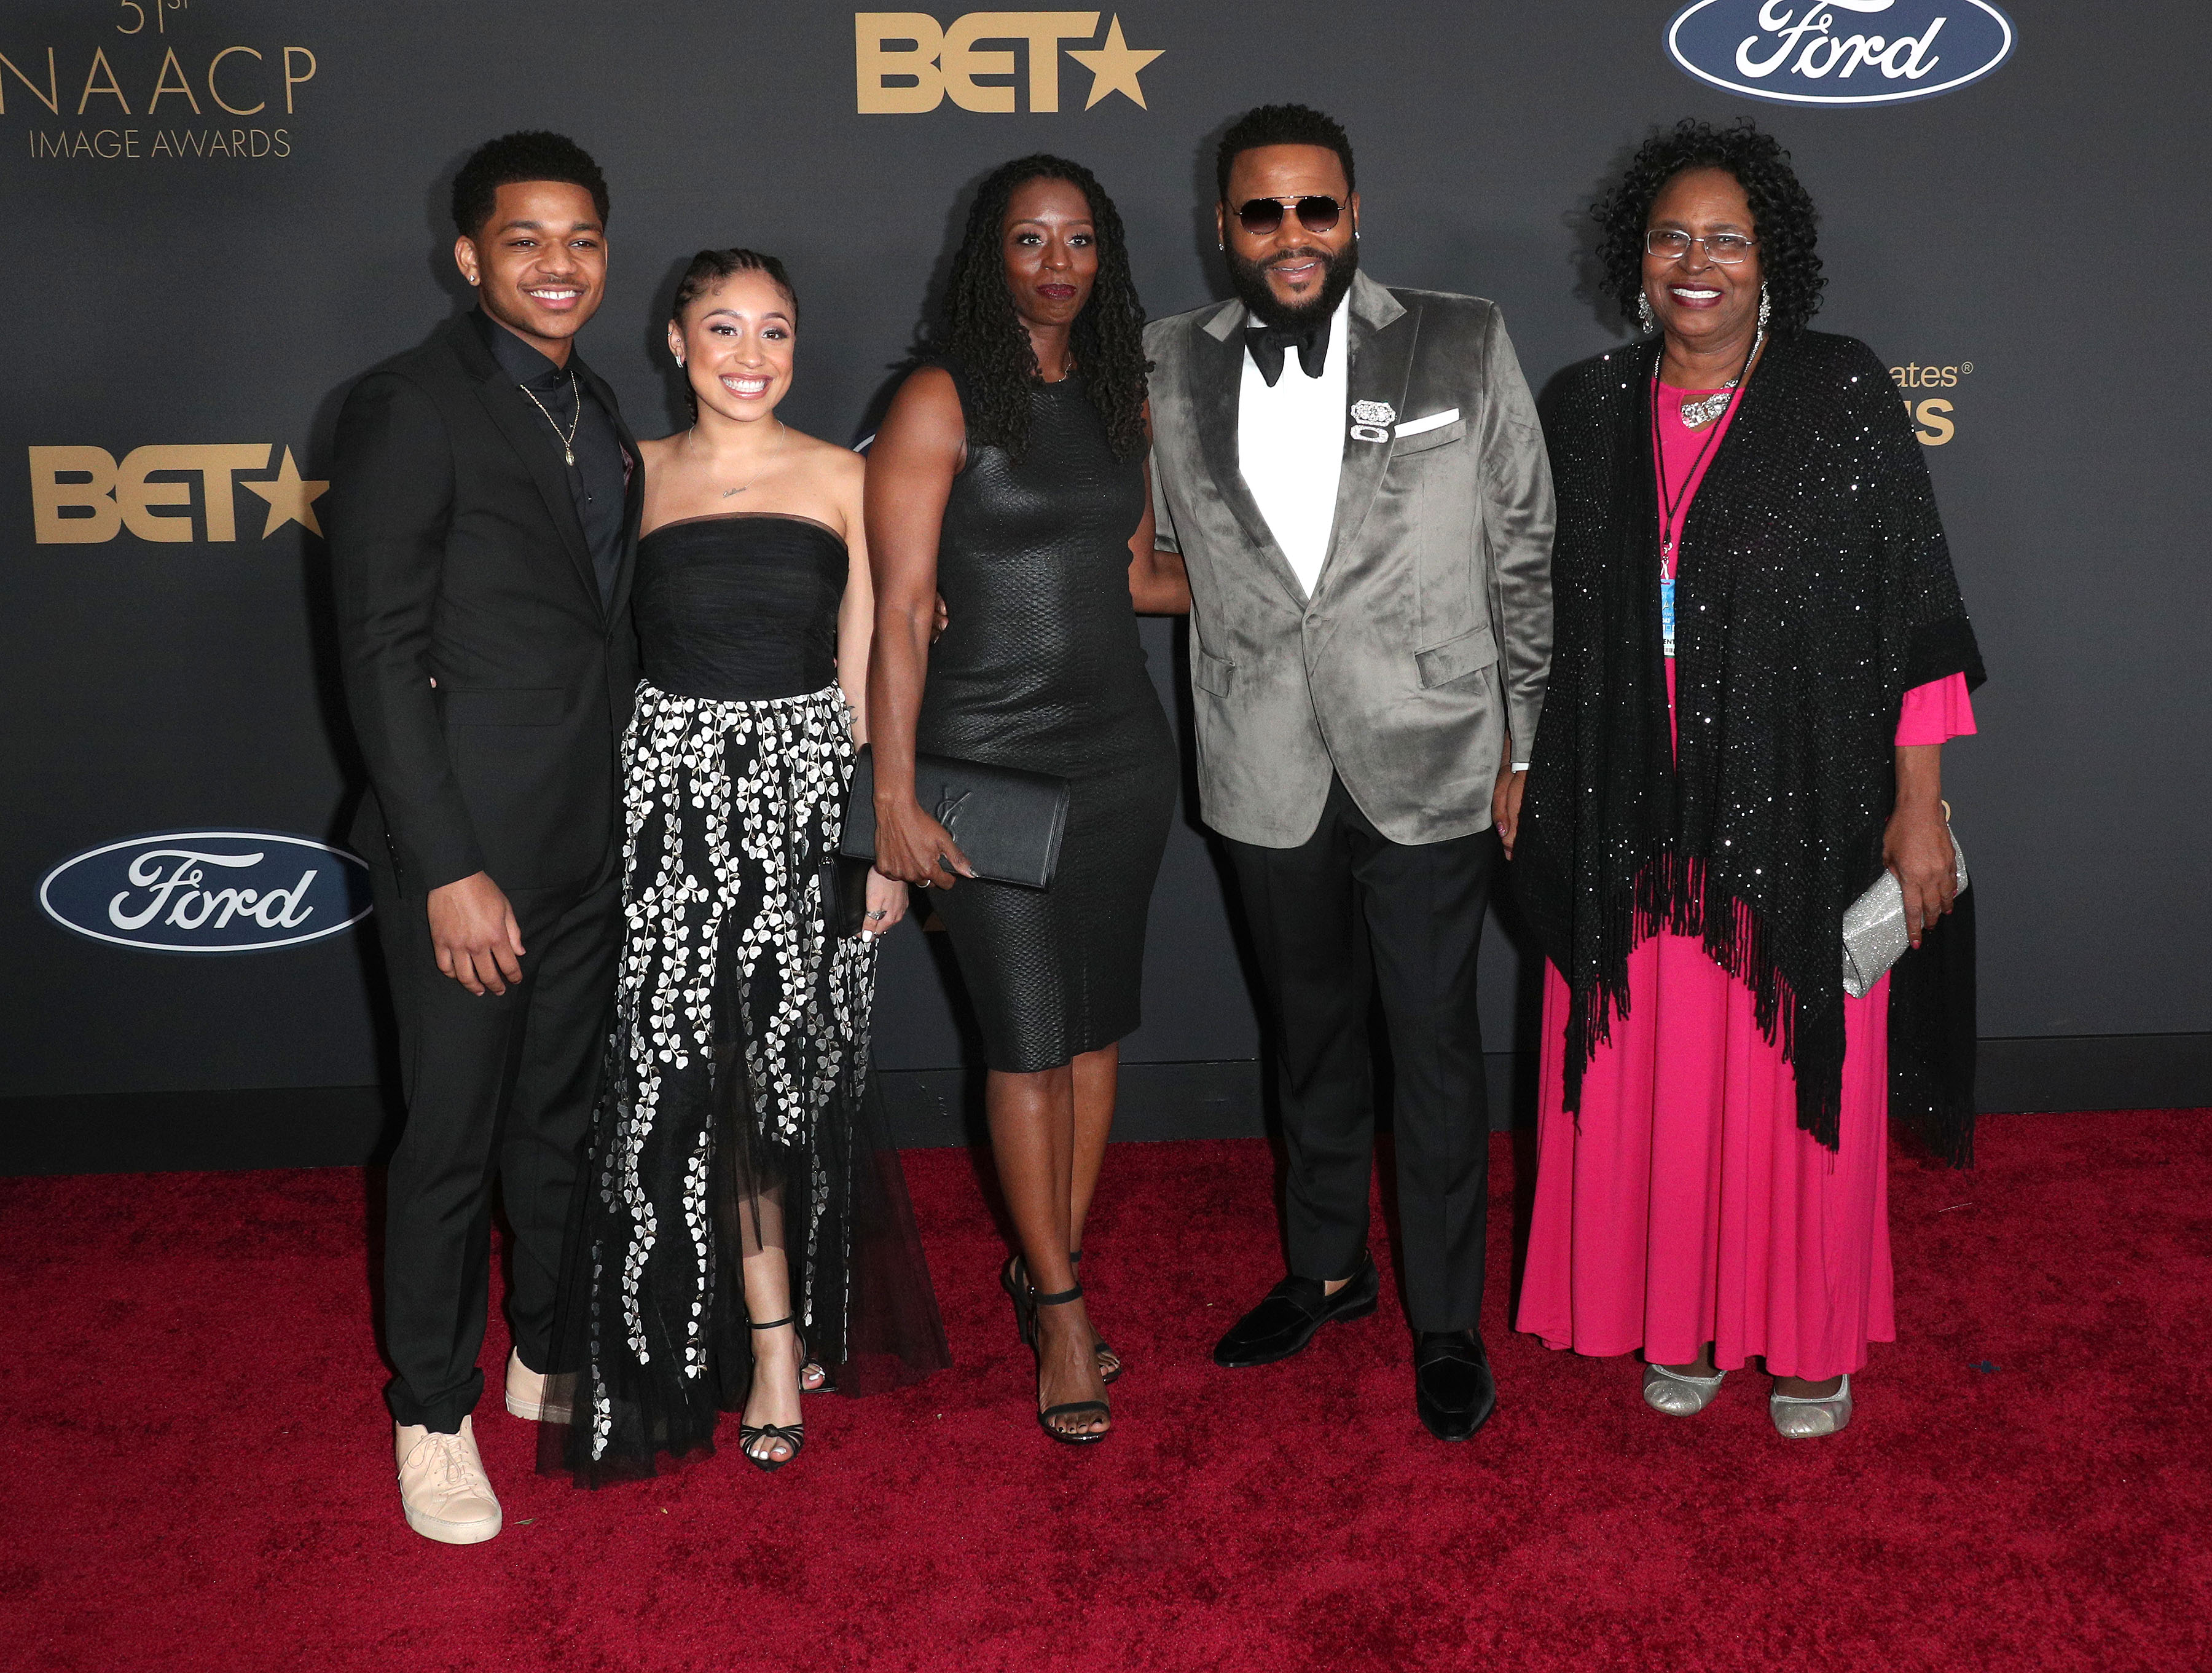 Anthony Anderson's family at The 51st NAACP Image Awards